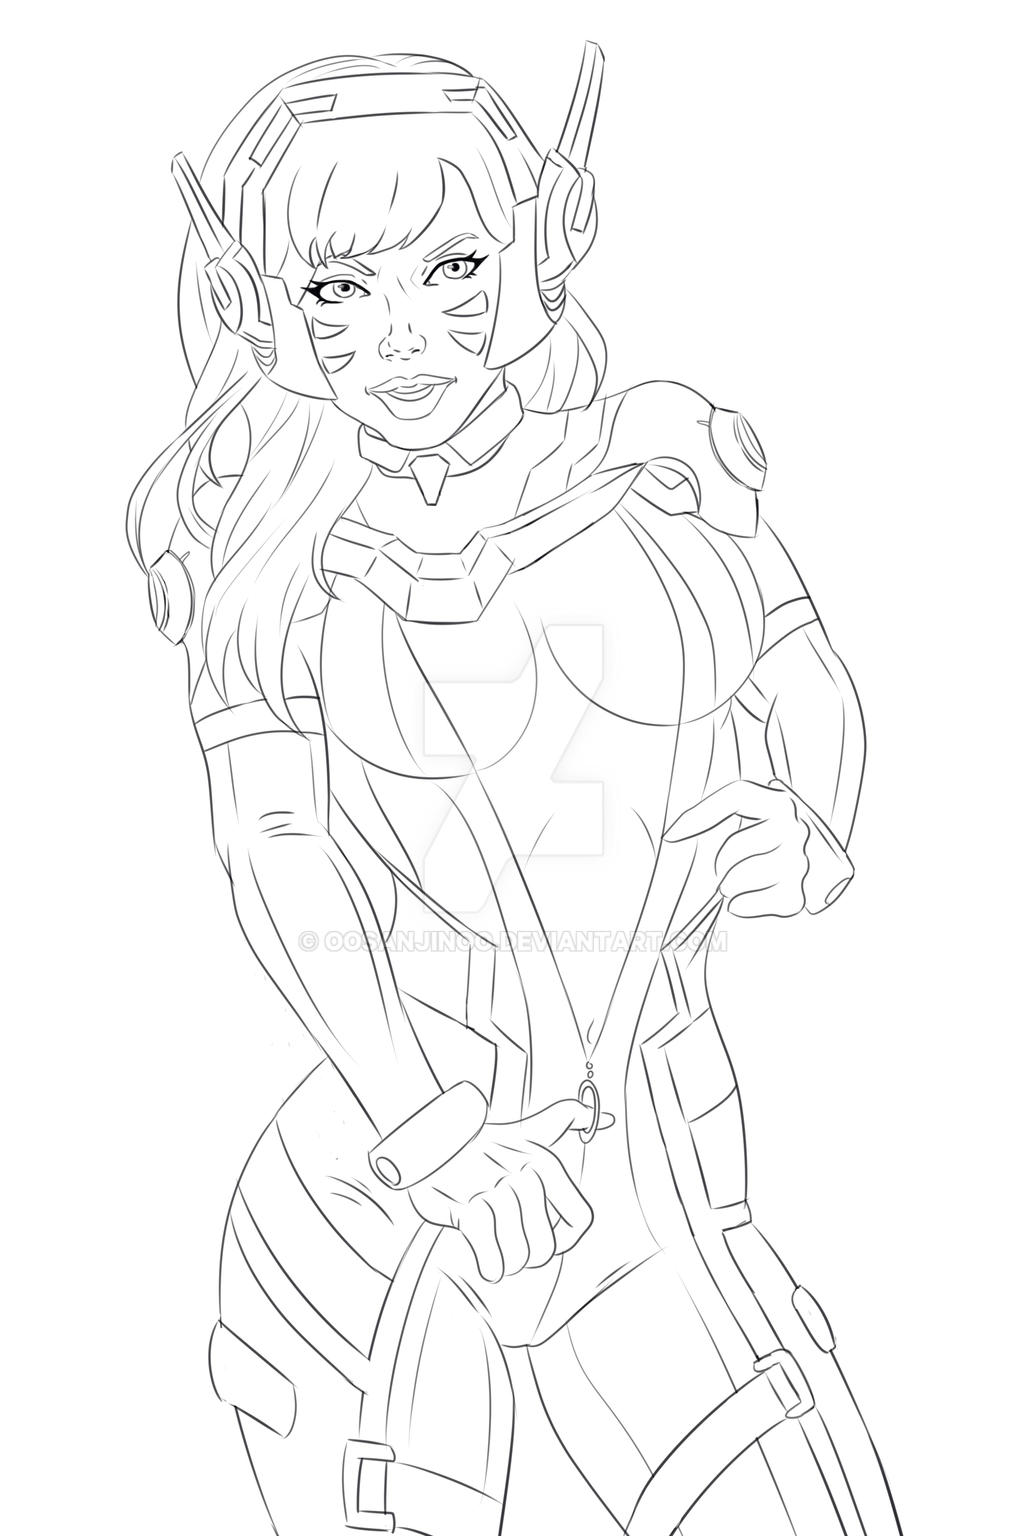 Overwatch d va lineart by oosanjinoo on deviantart for Overwatch coloring pages